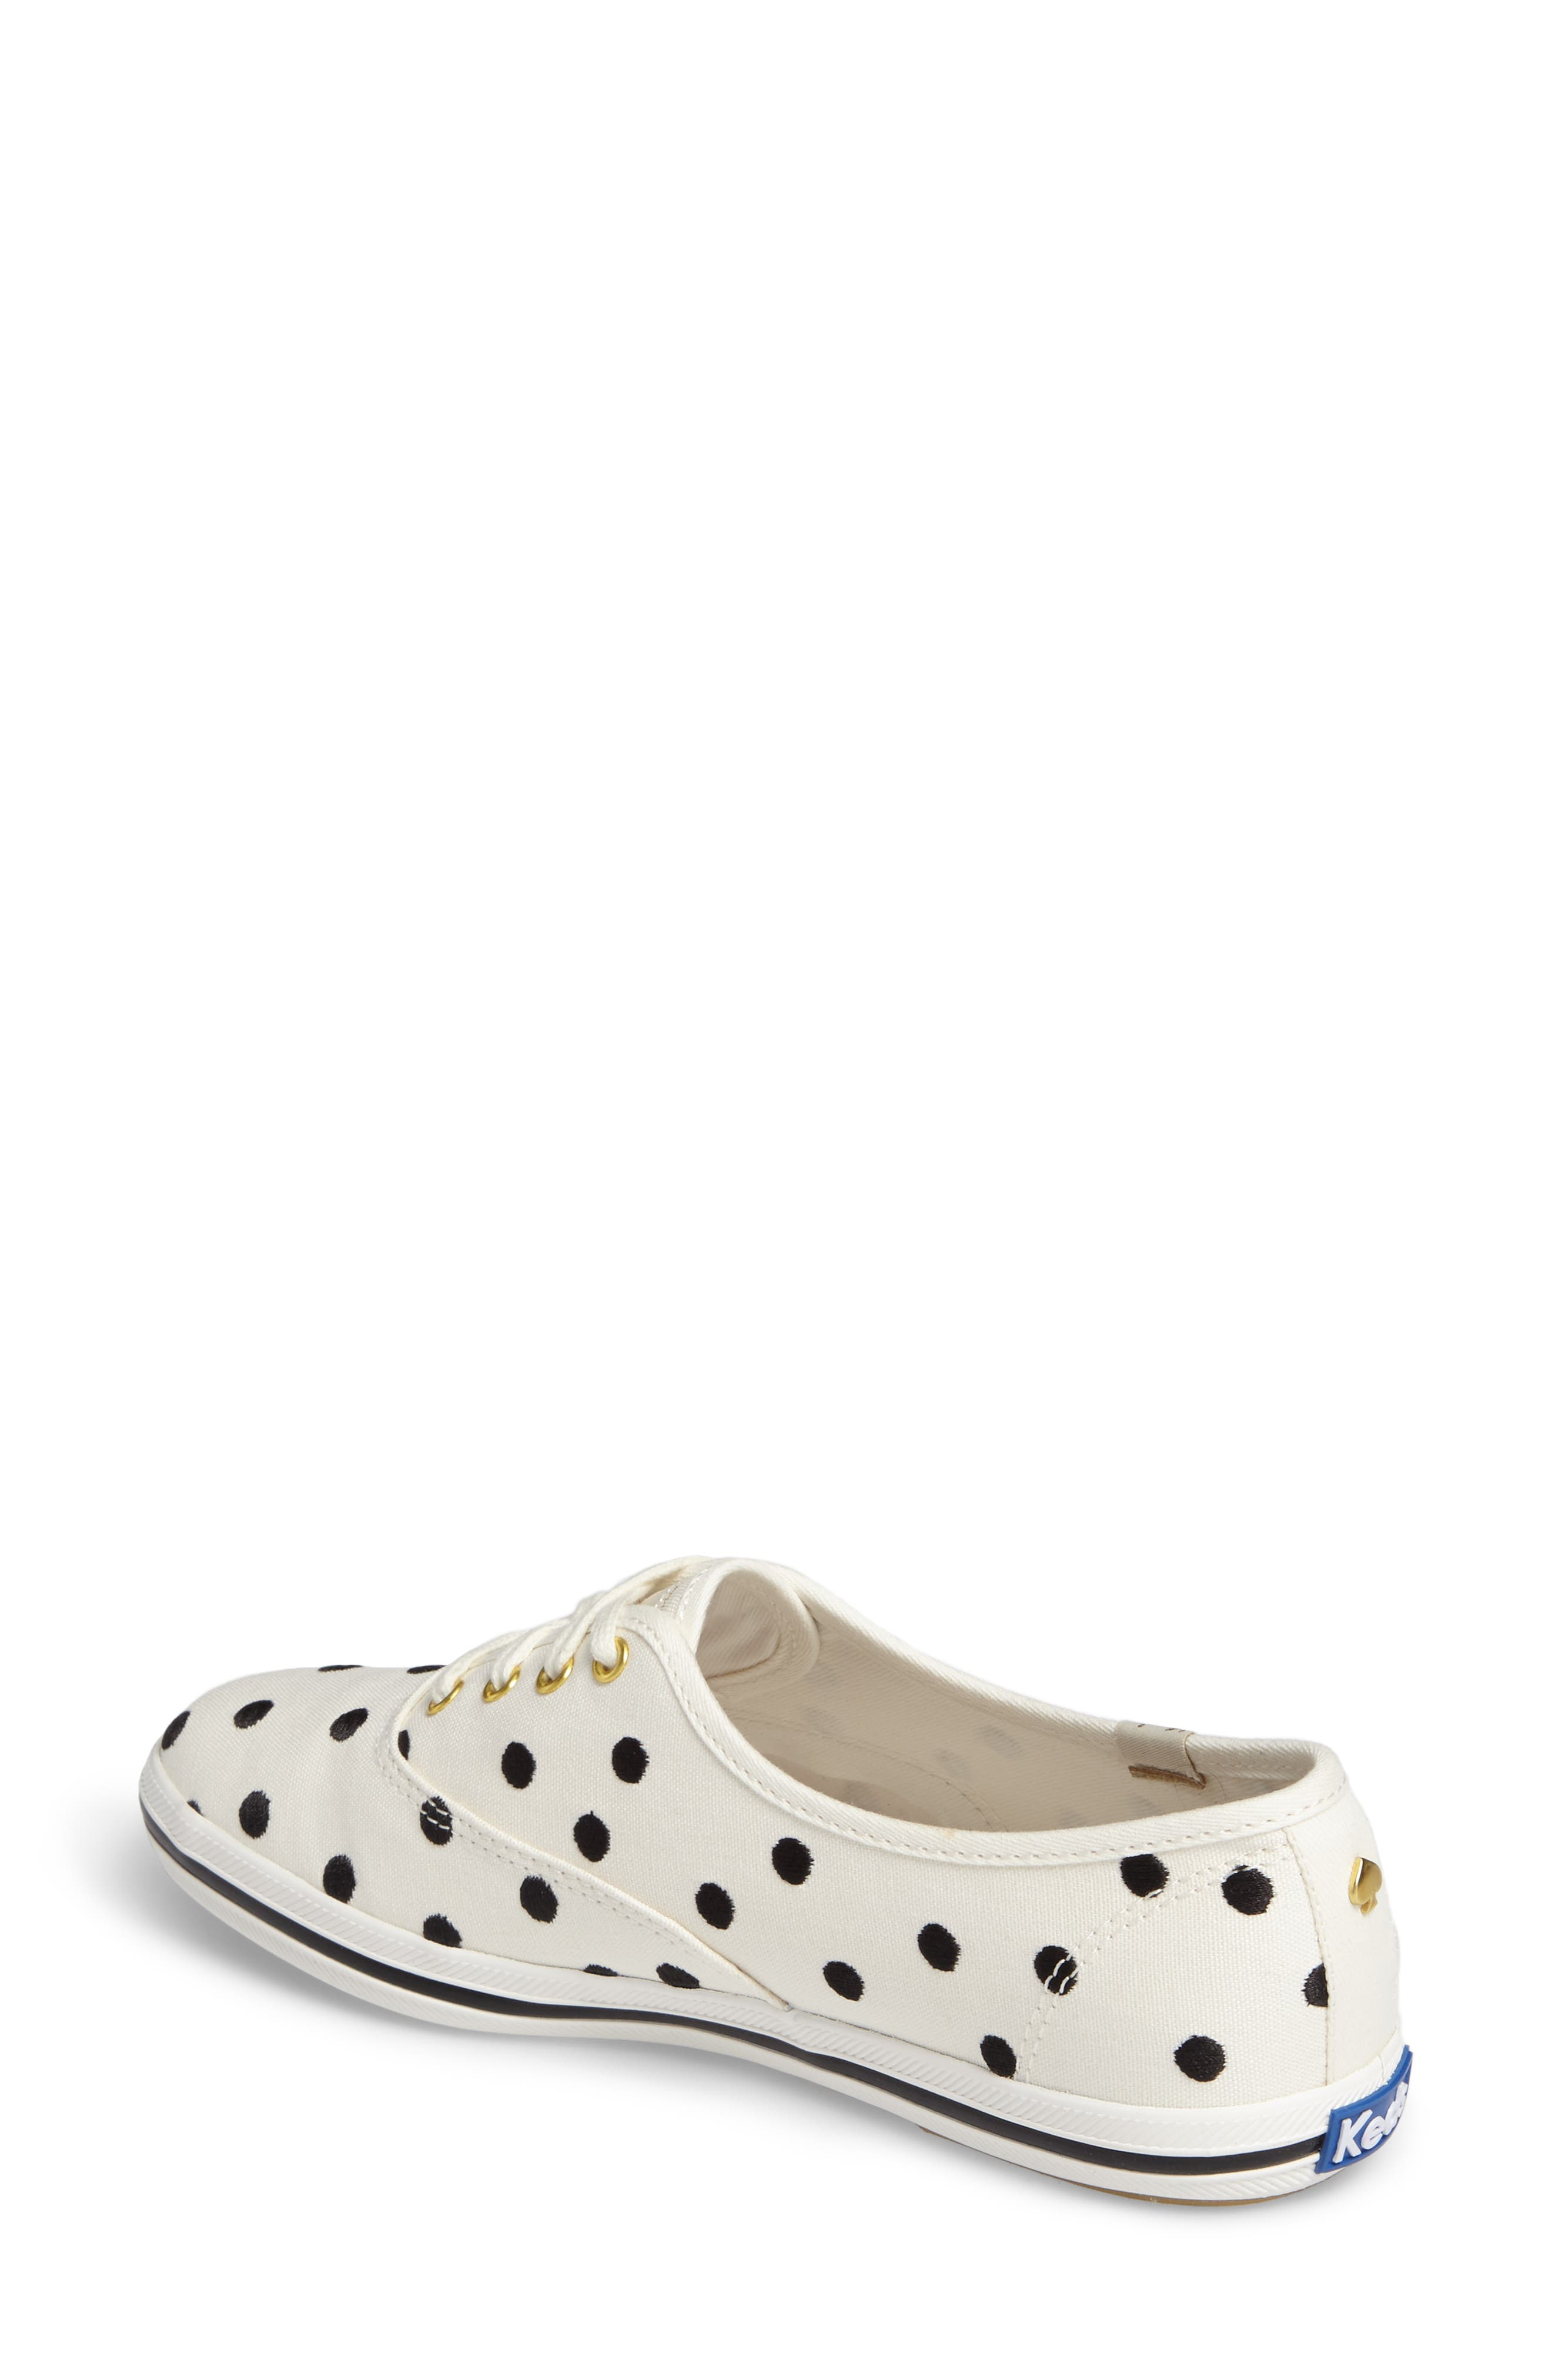 Keds<sup>®</sup> x kate spade new york champion sneaker,                             Alternate thumbnail 6, color,